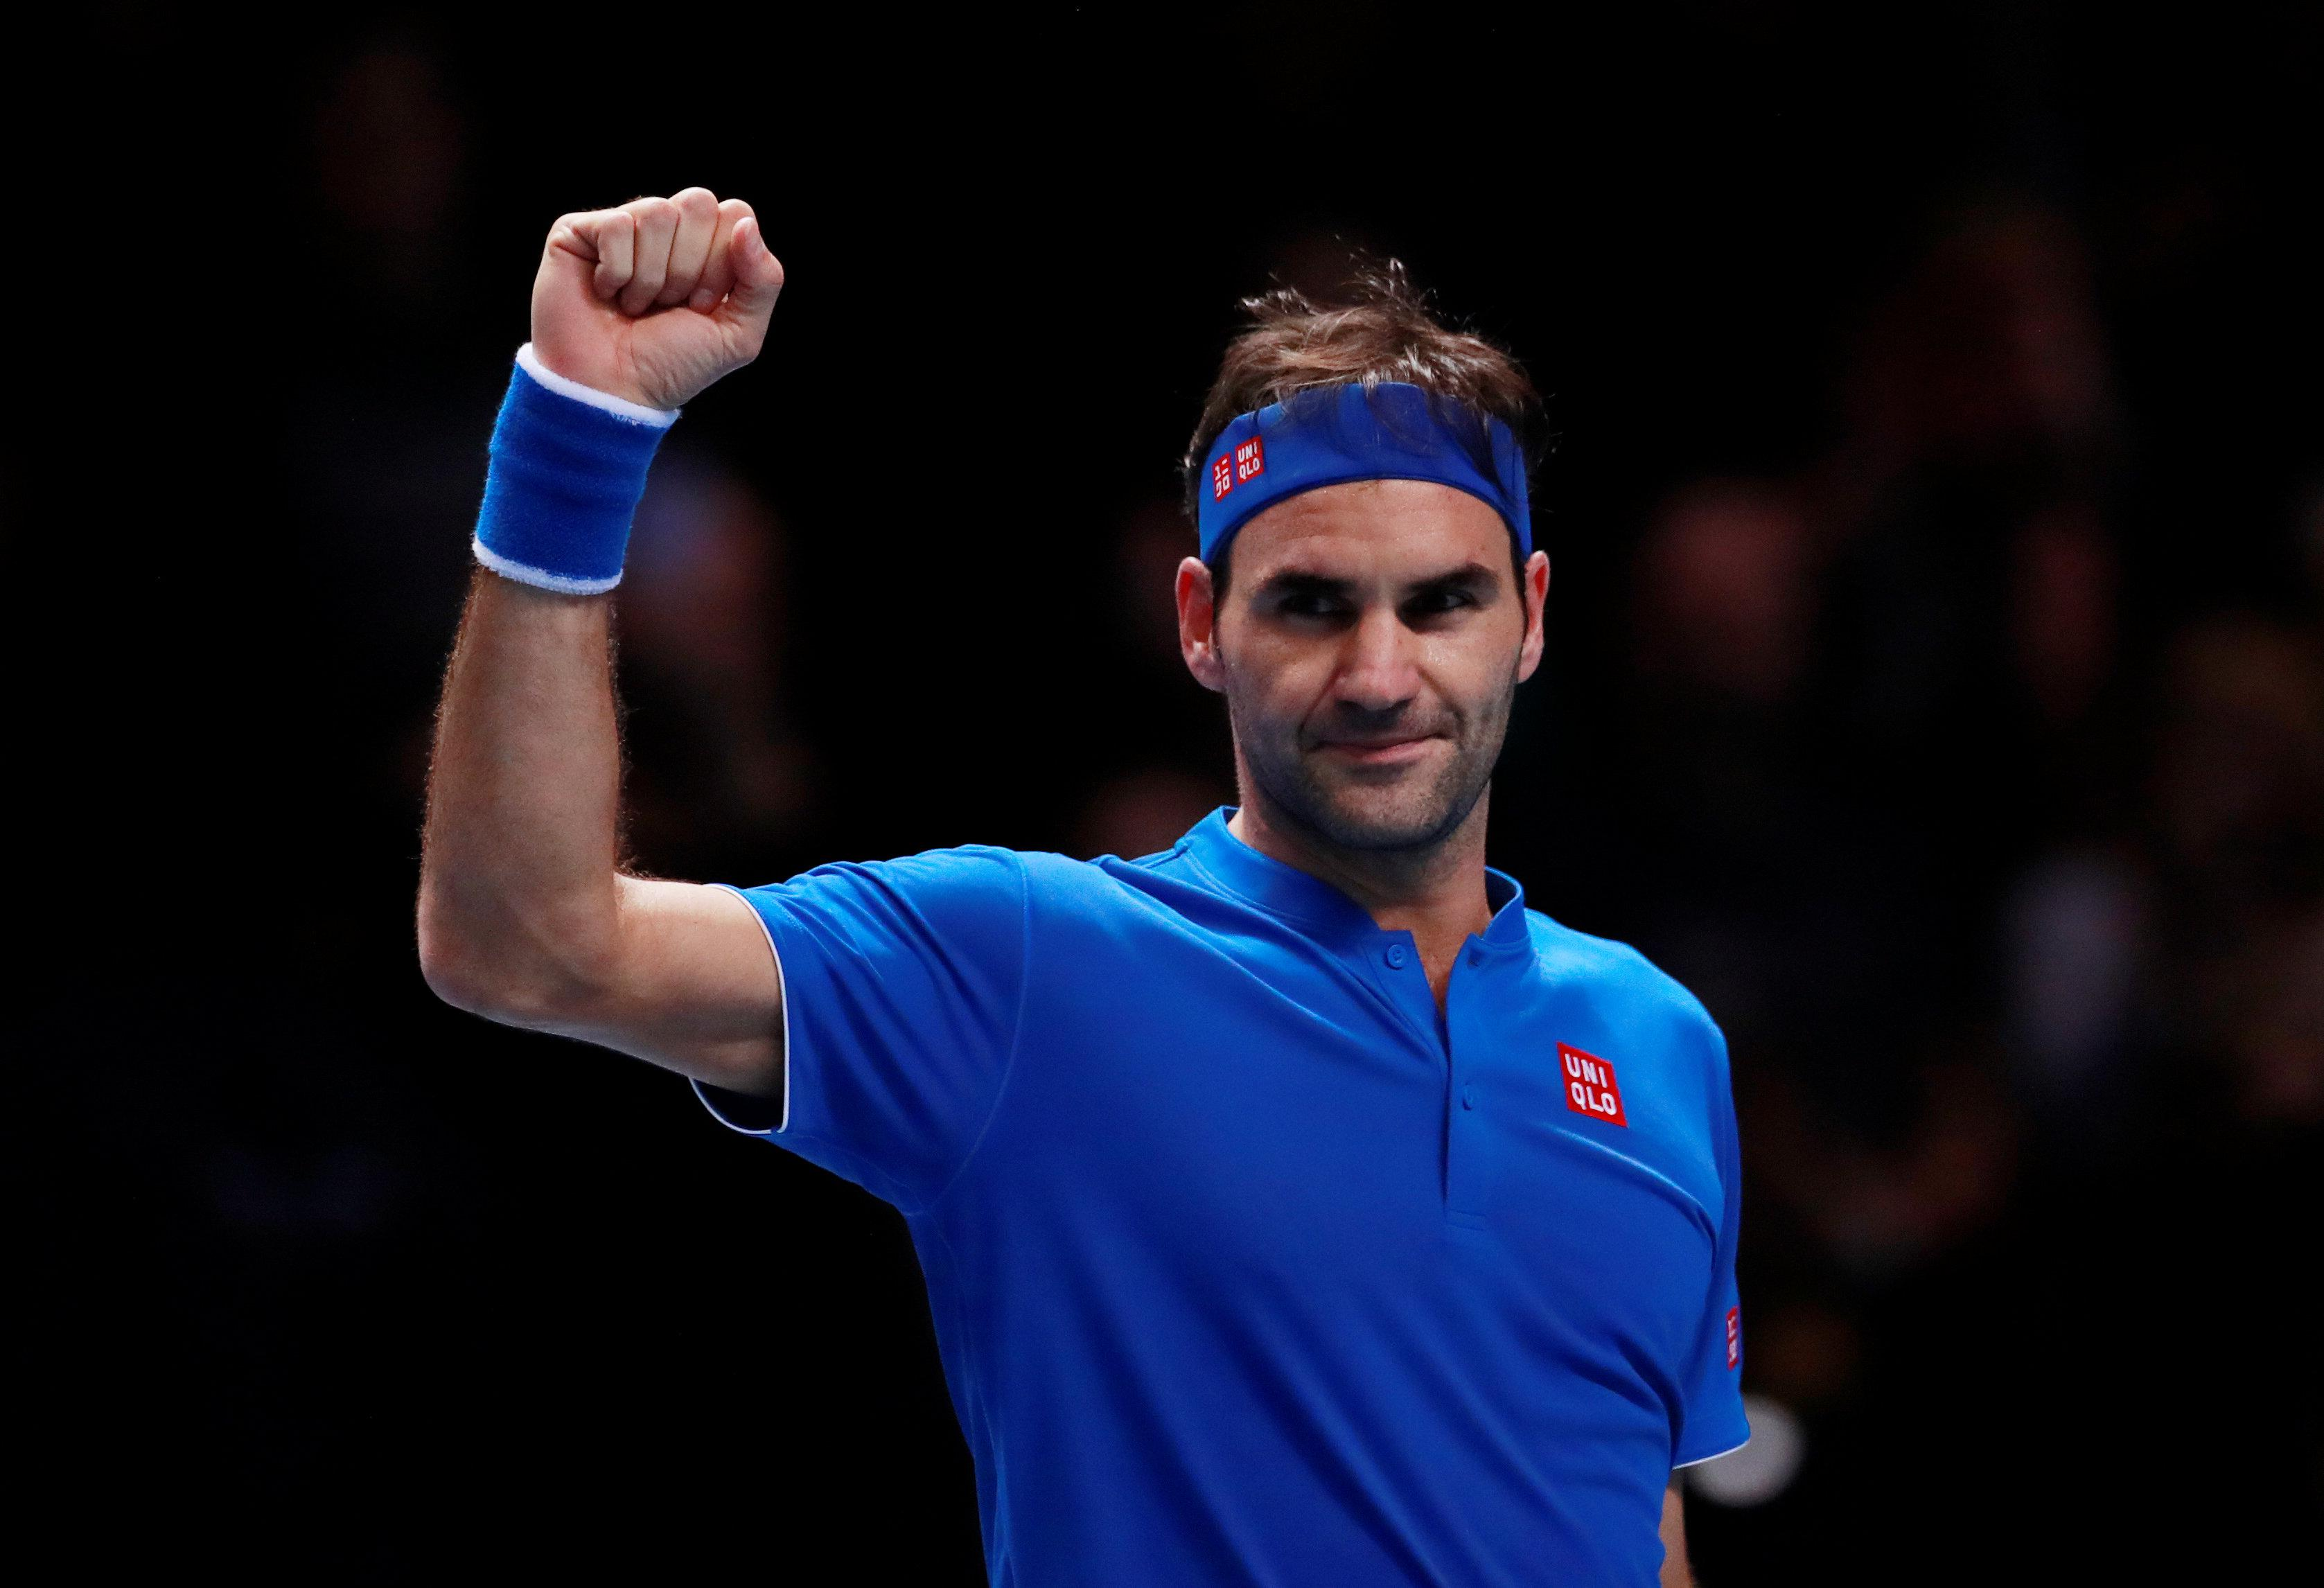 Federer has reached ATP Finals semis for the 15th time in his career